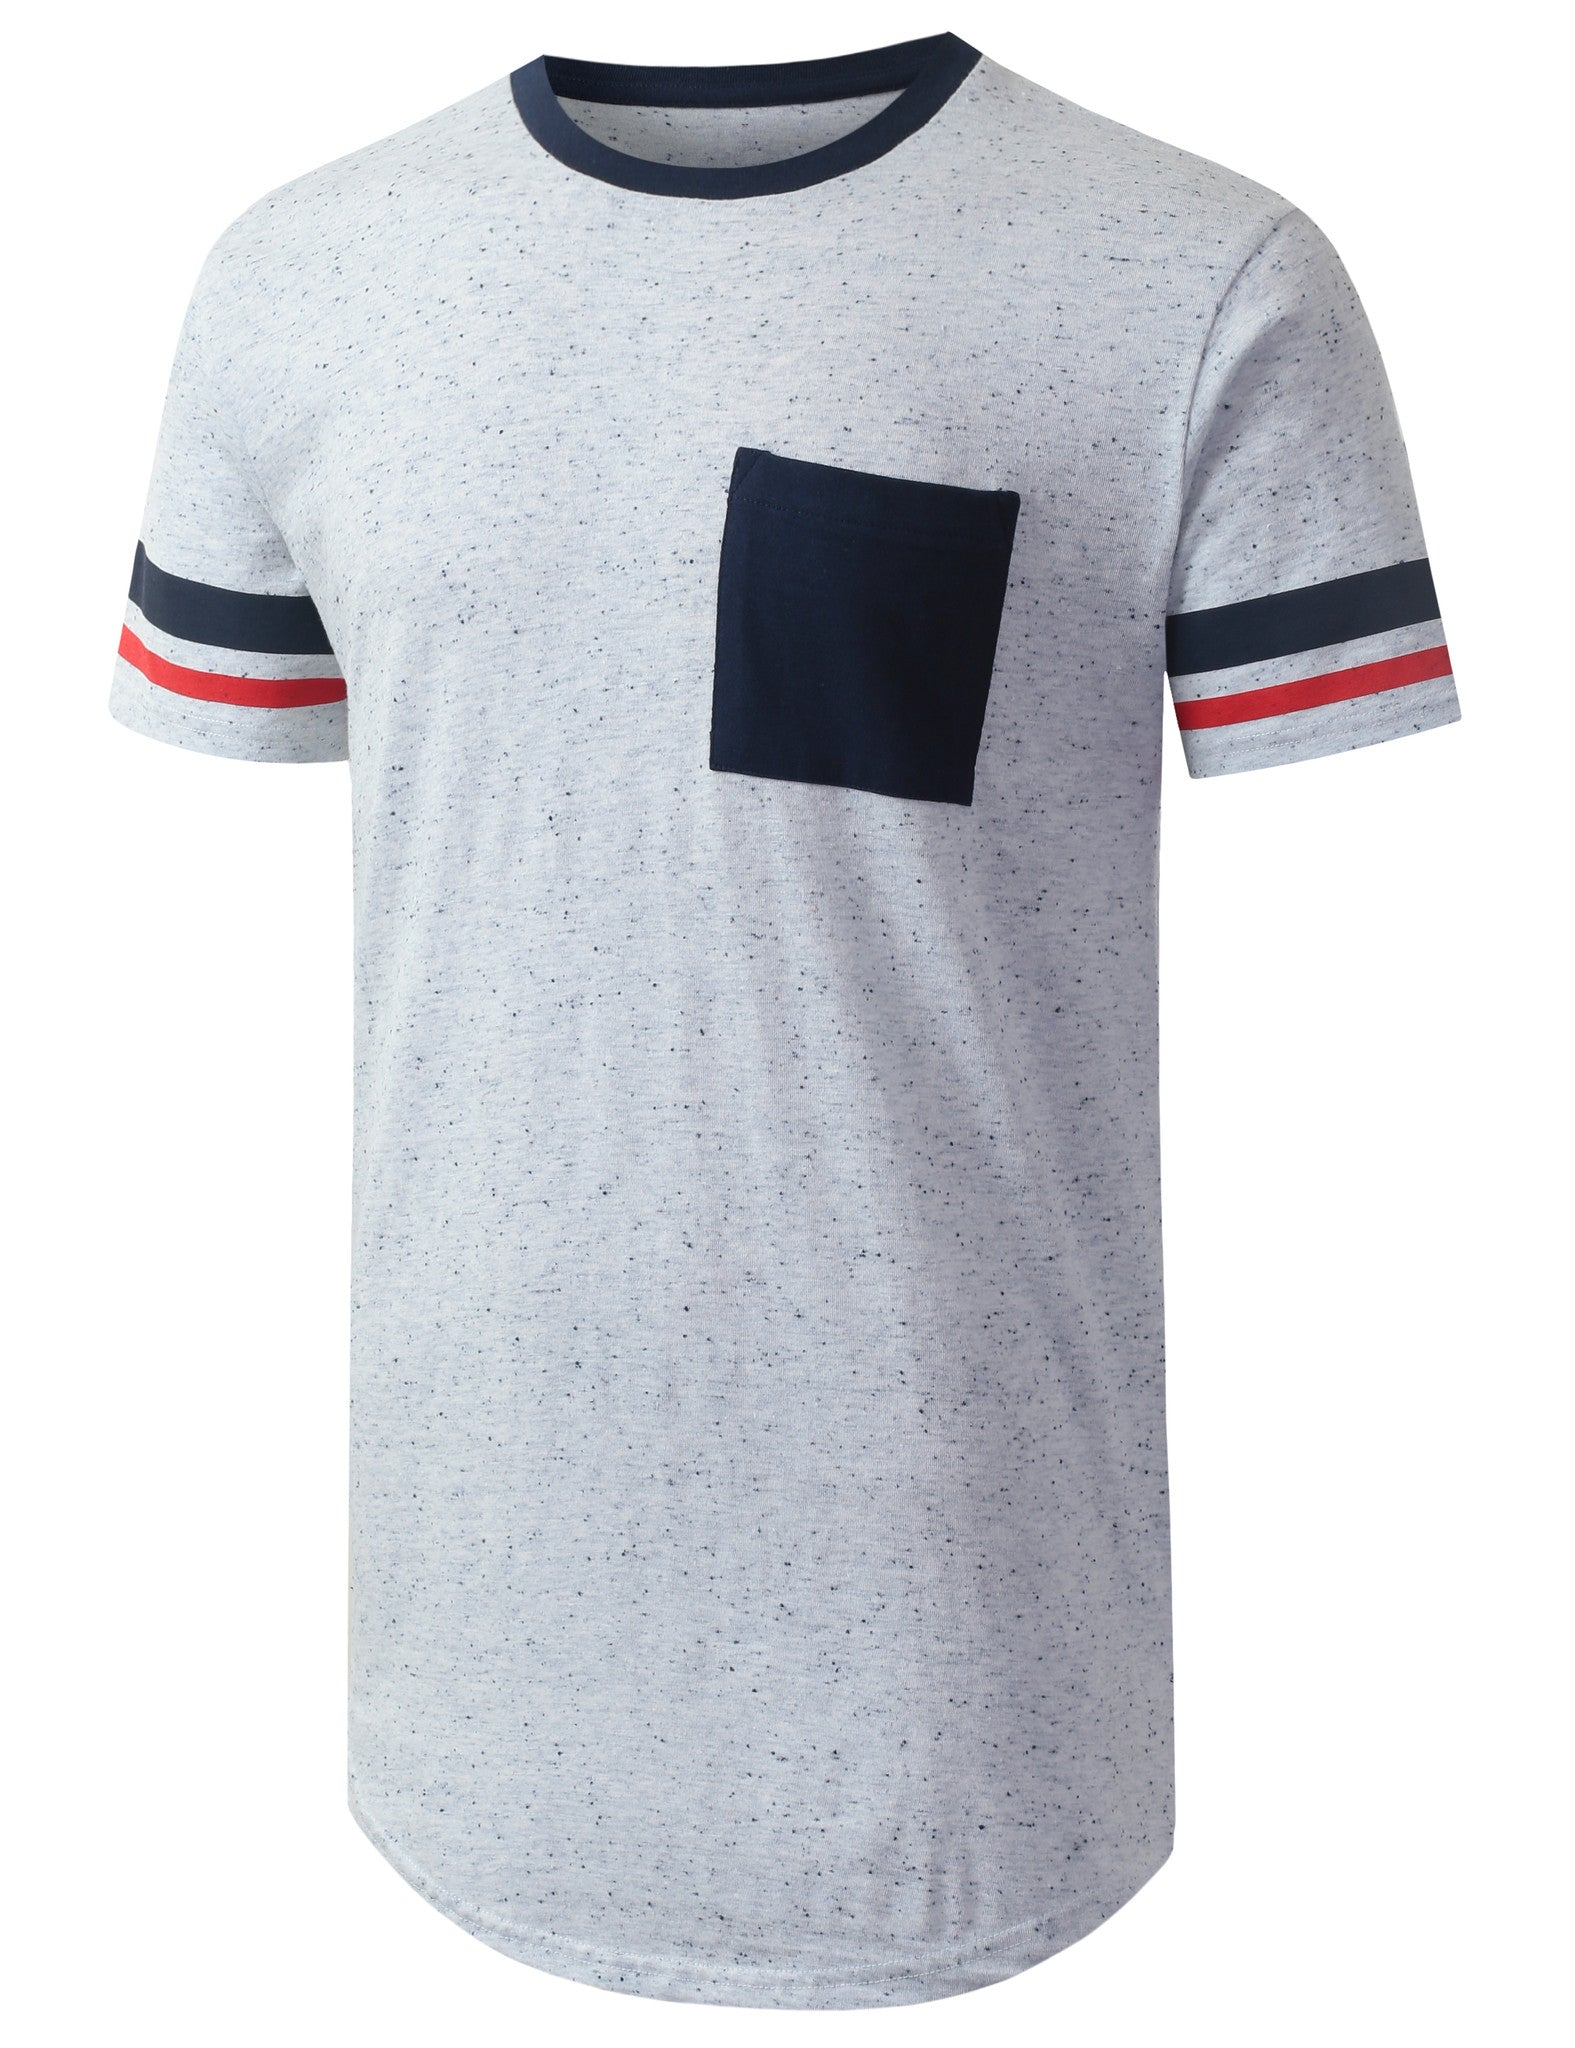 WHITE Speckle Pocket Longline Tshirt- URBANCREWS